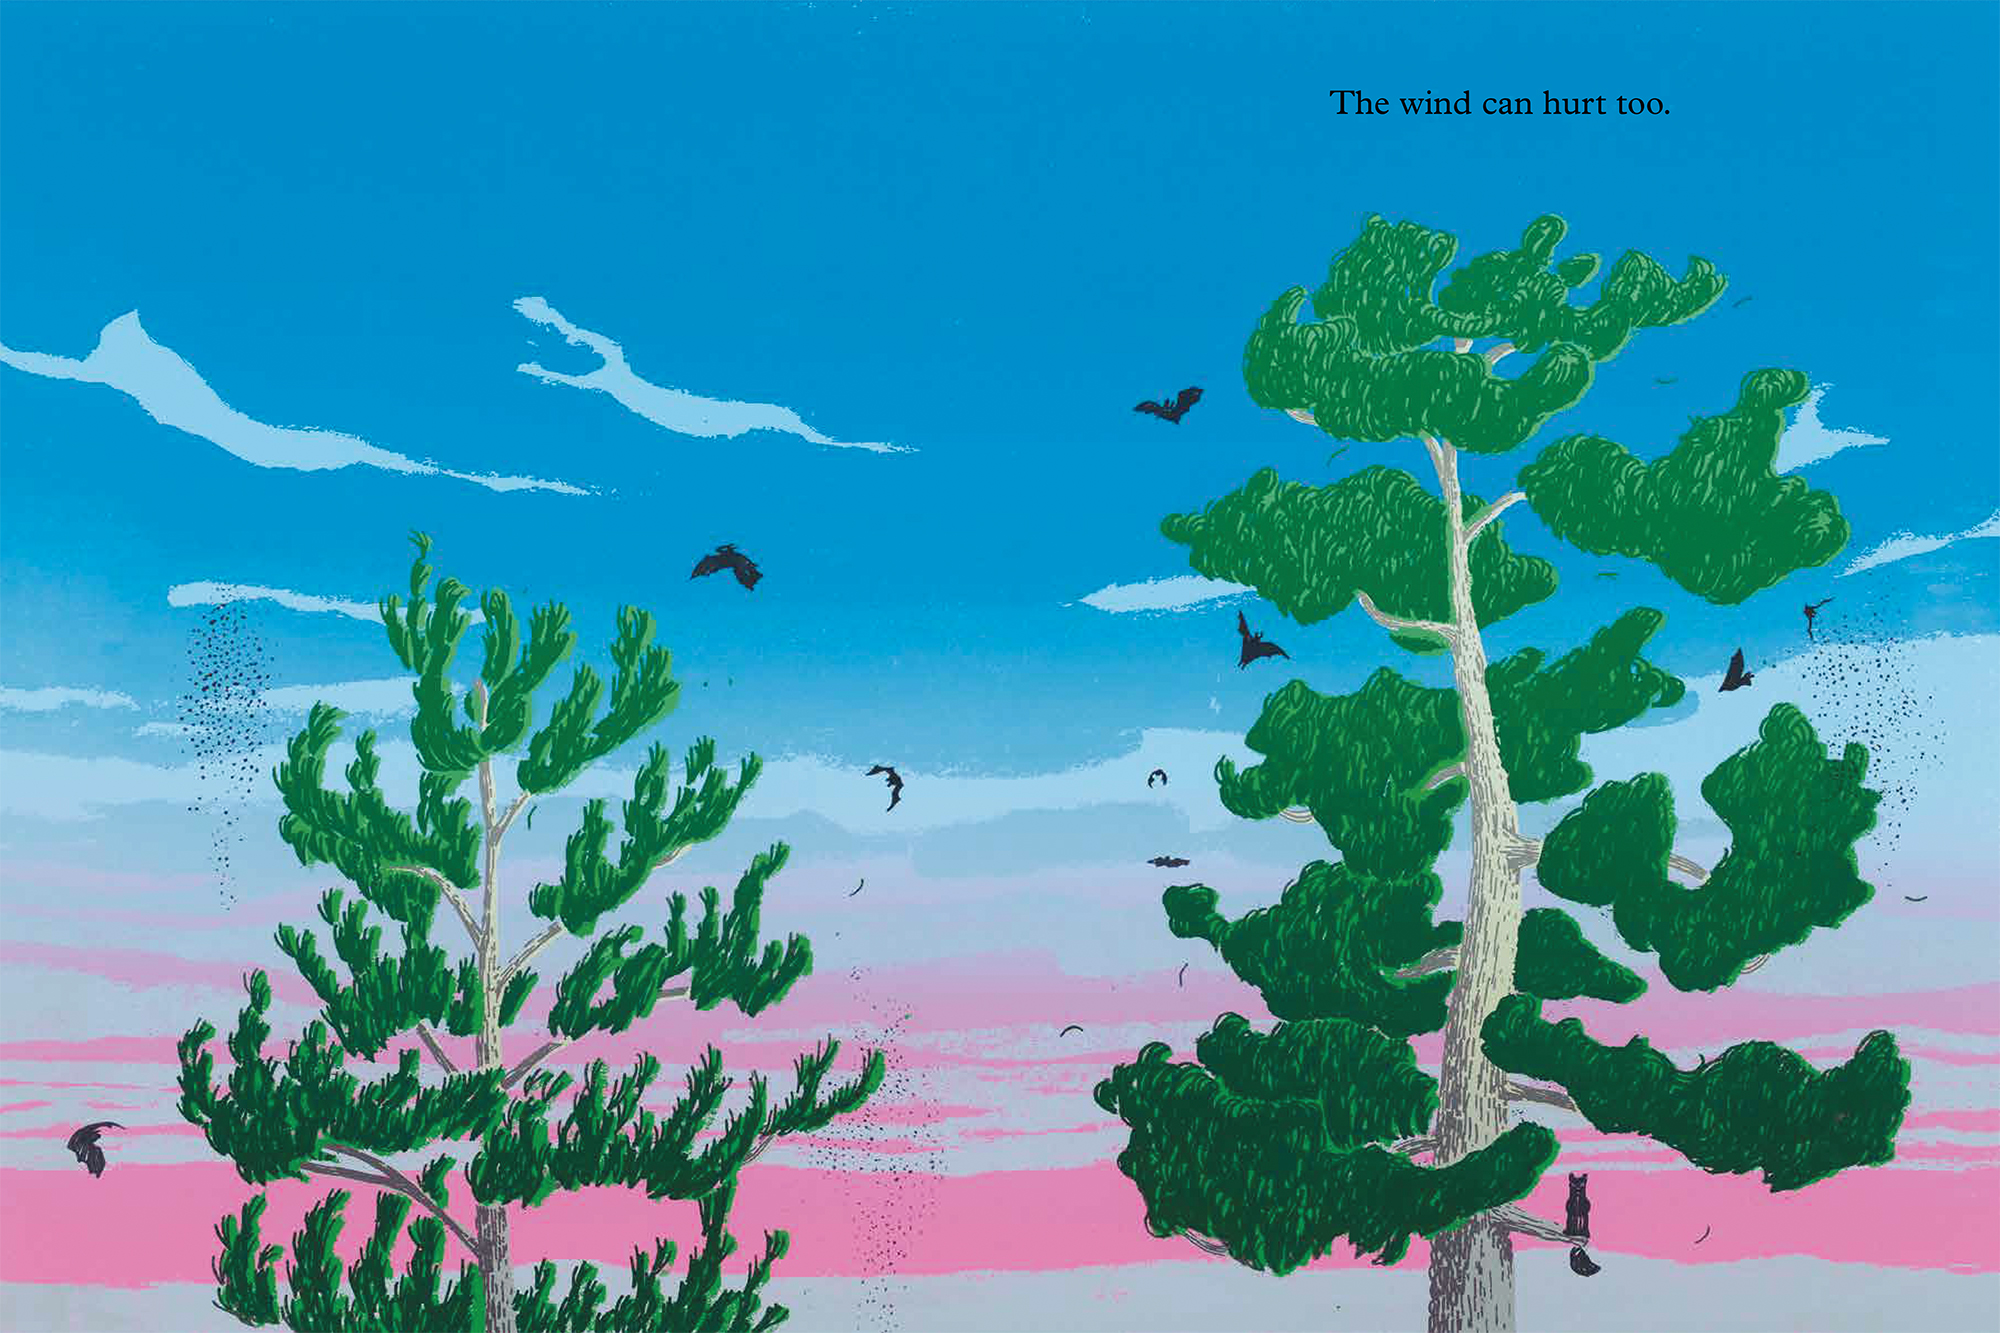 Illustration of two trees from The Wind and the Trees